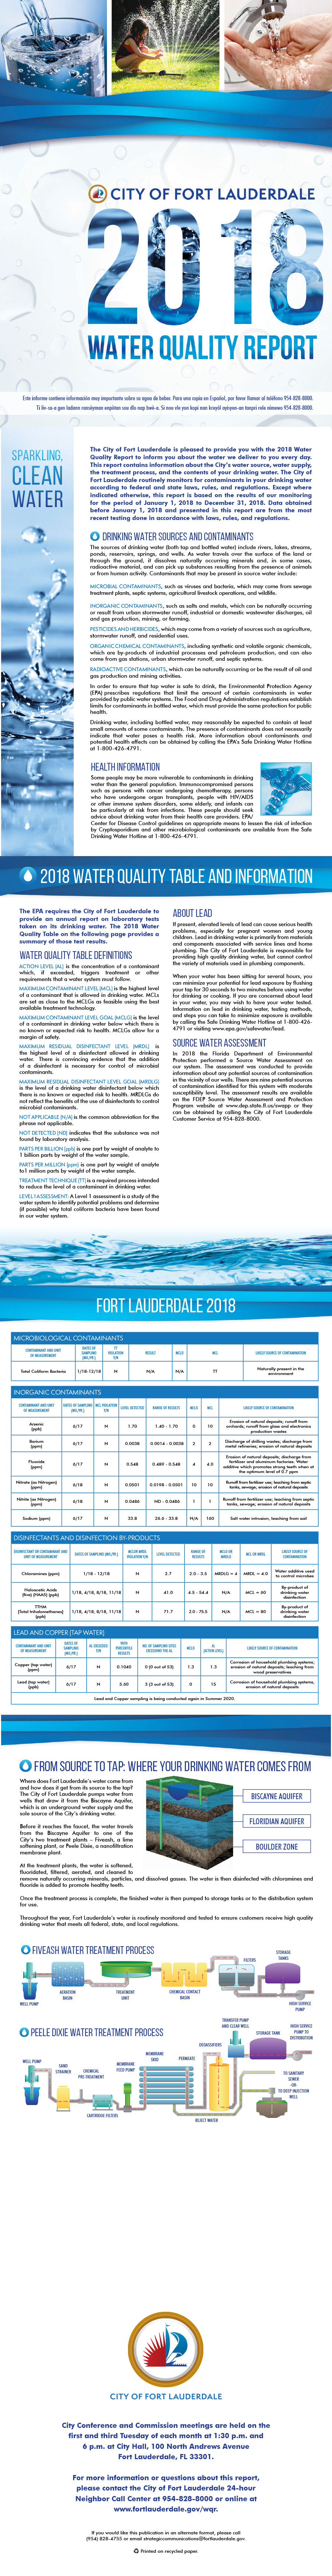 Water Quality Report 2018_4-25-19-Combined